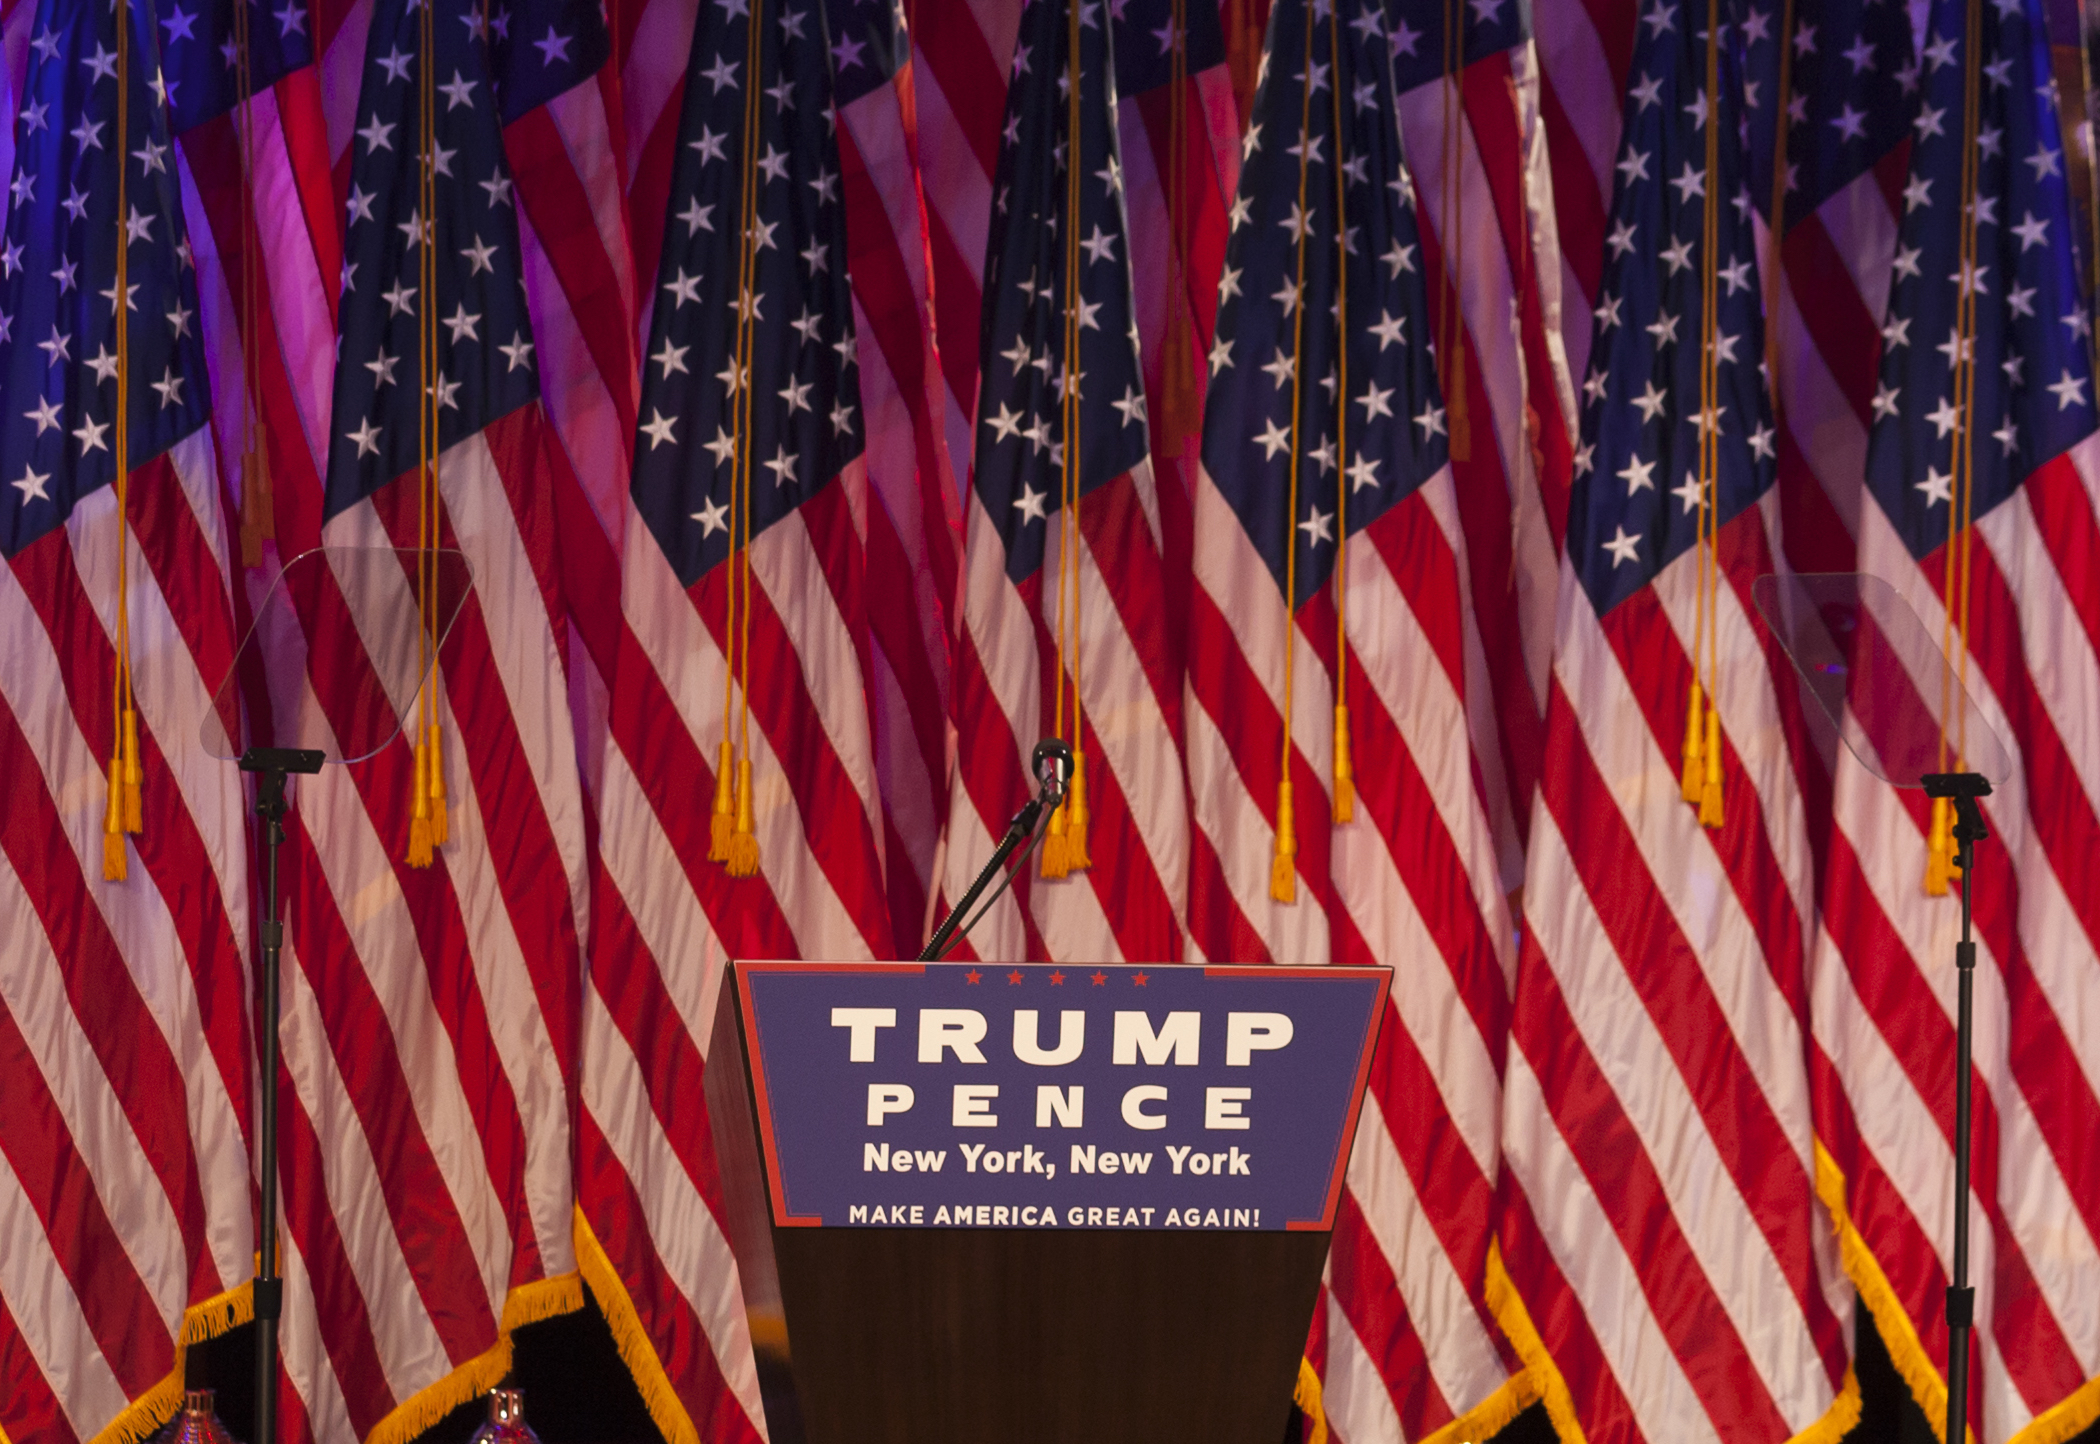 Donald Trump and his maverick policies – what can SMEs expect?